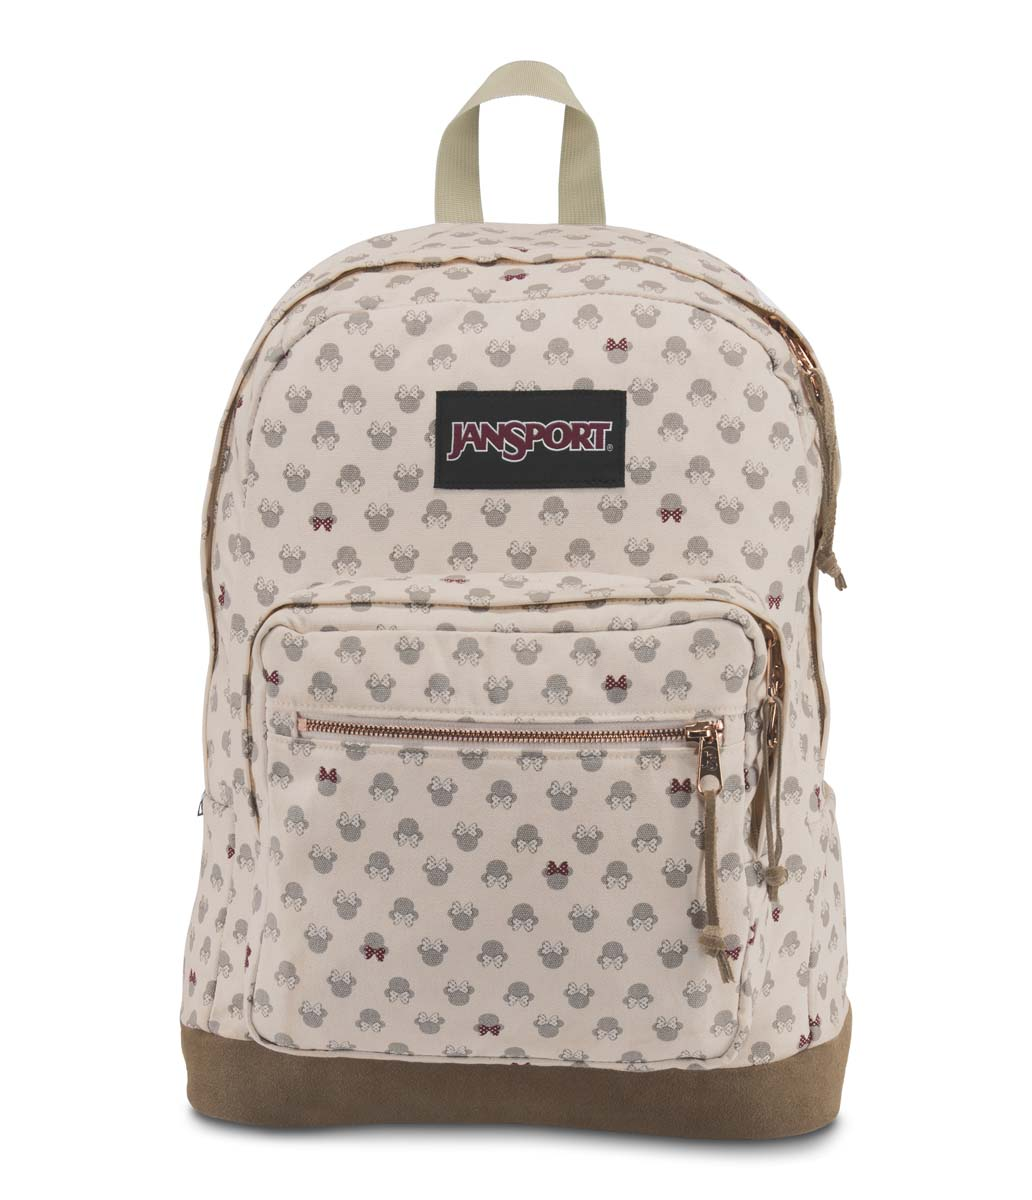 JanSport กระเป๋าเป้ รุ่น Right Pack Expressions - Disney Luxe Minnie